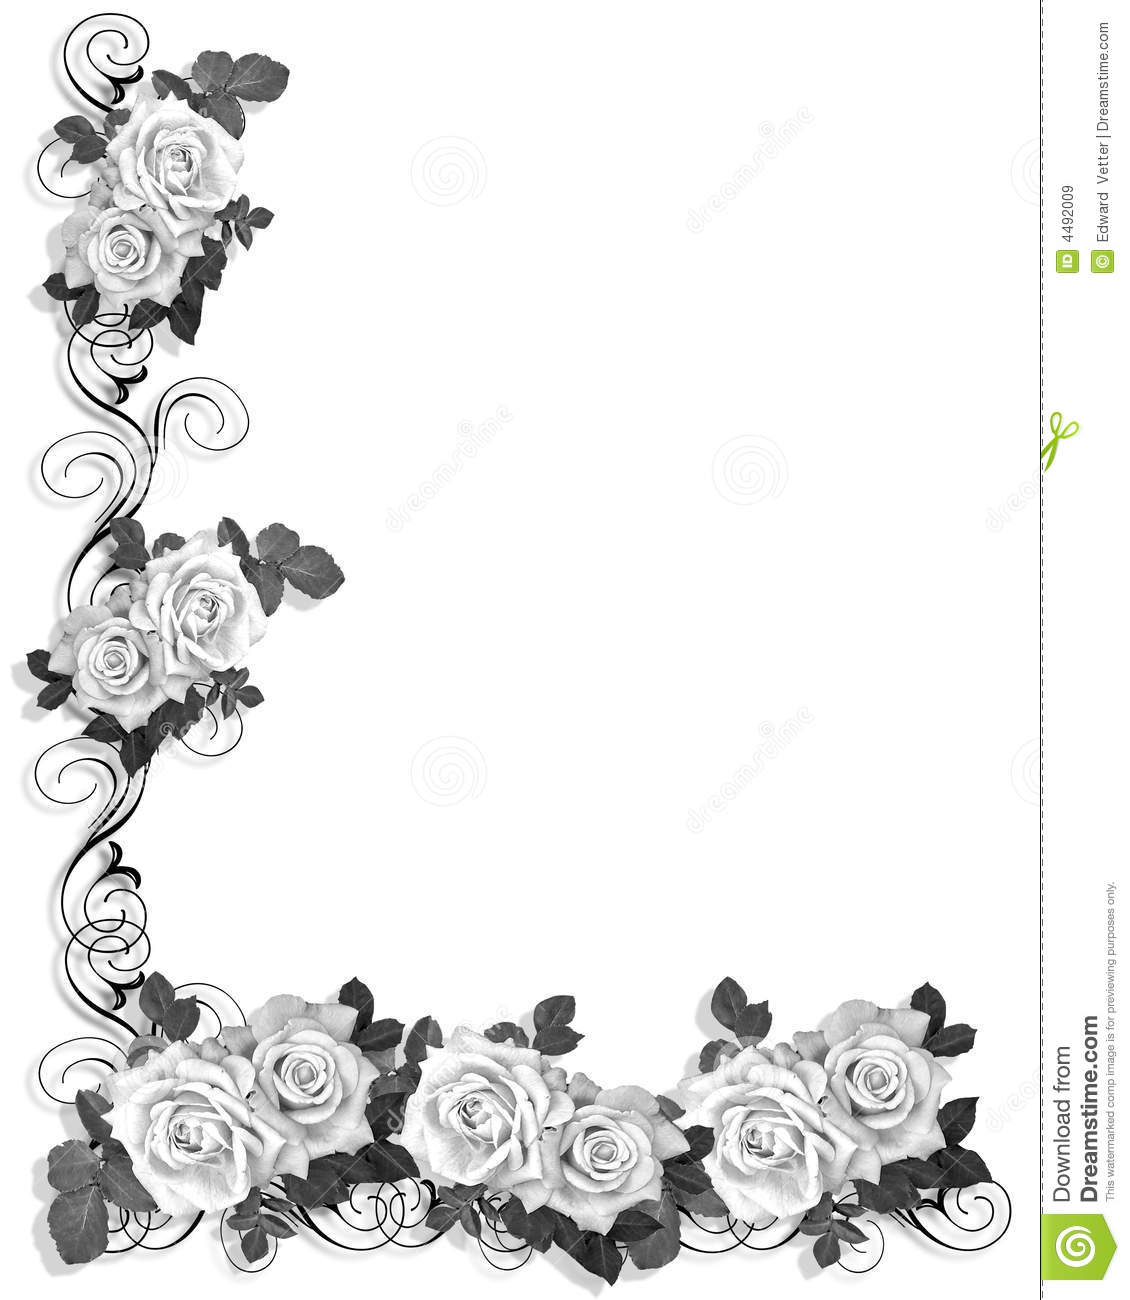 14 black and white border designs images black and white